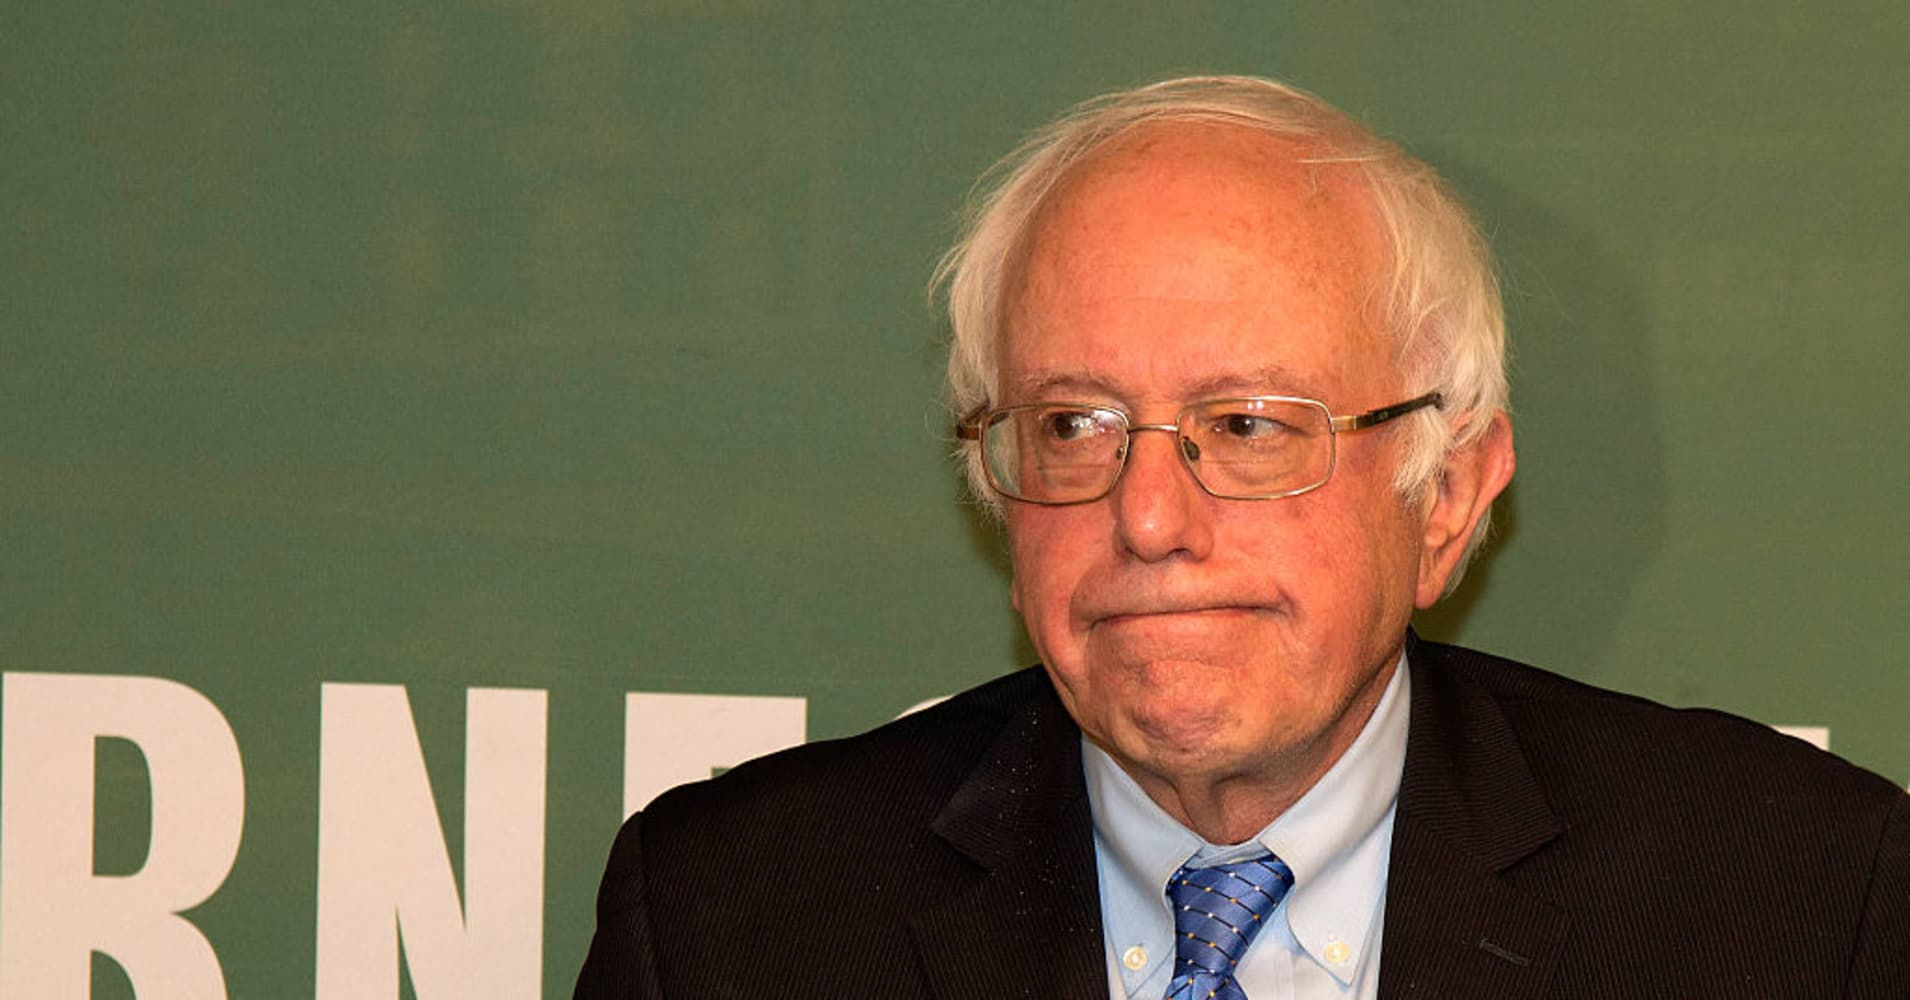 Bernie Sanders just thanked Trump for a comment about health care